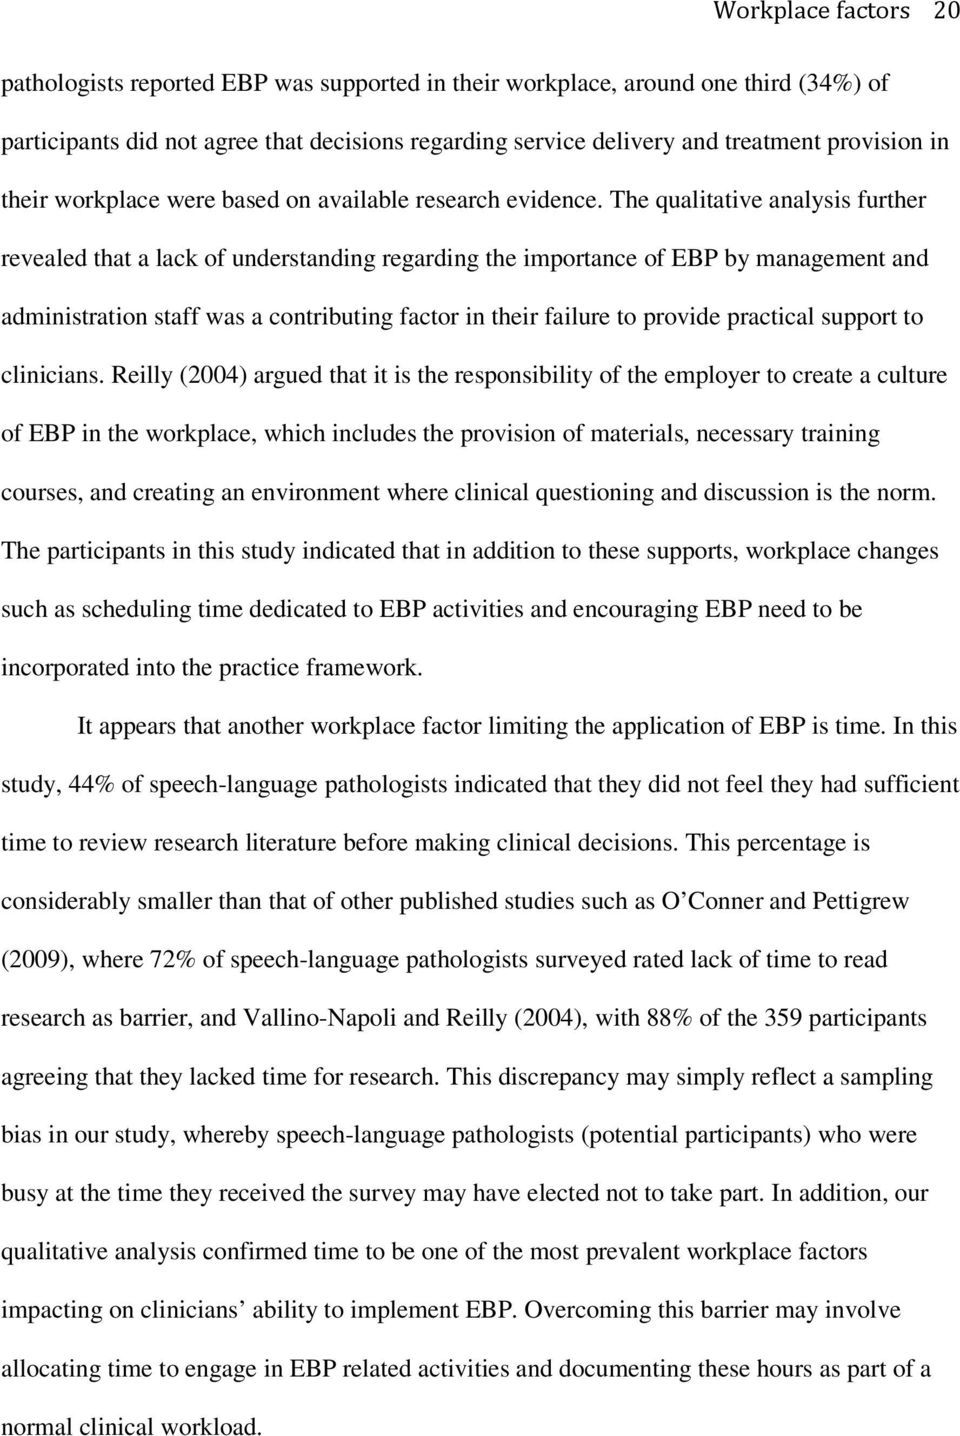 The qualitative analysis further revealed that a lack of understanding regarding the importance of EBP by management and administration staff was a contributing factor in their failure to provide